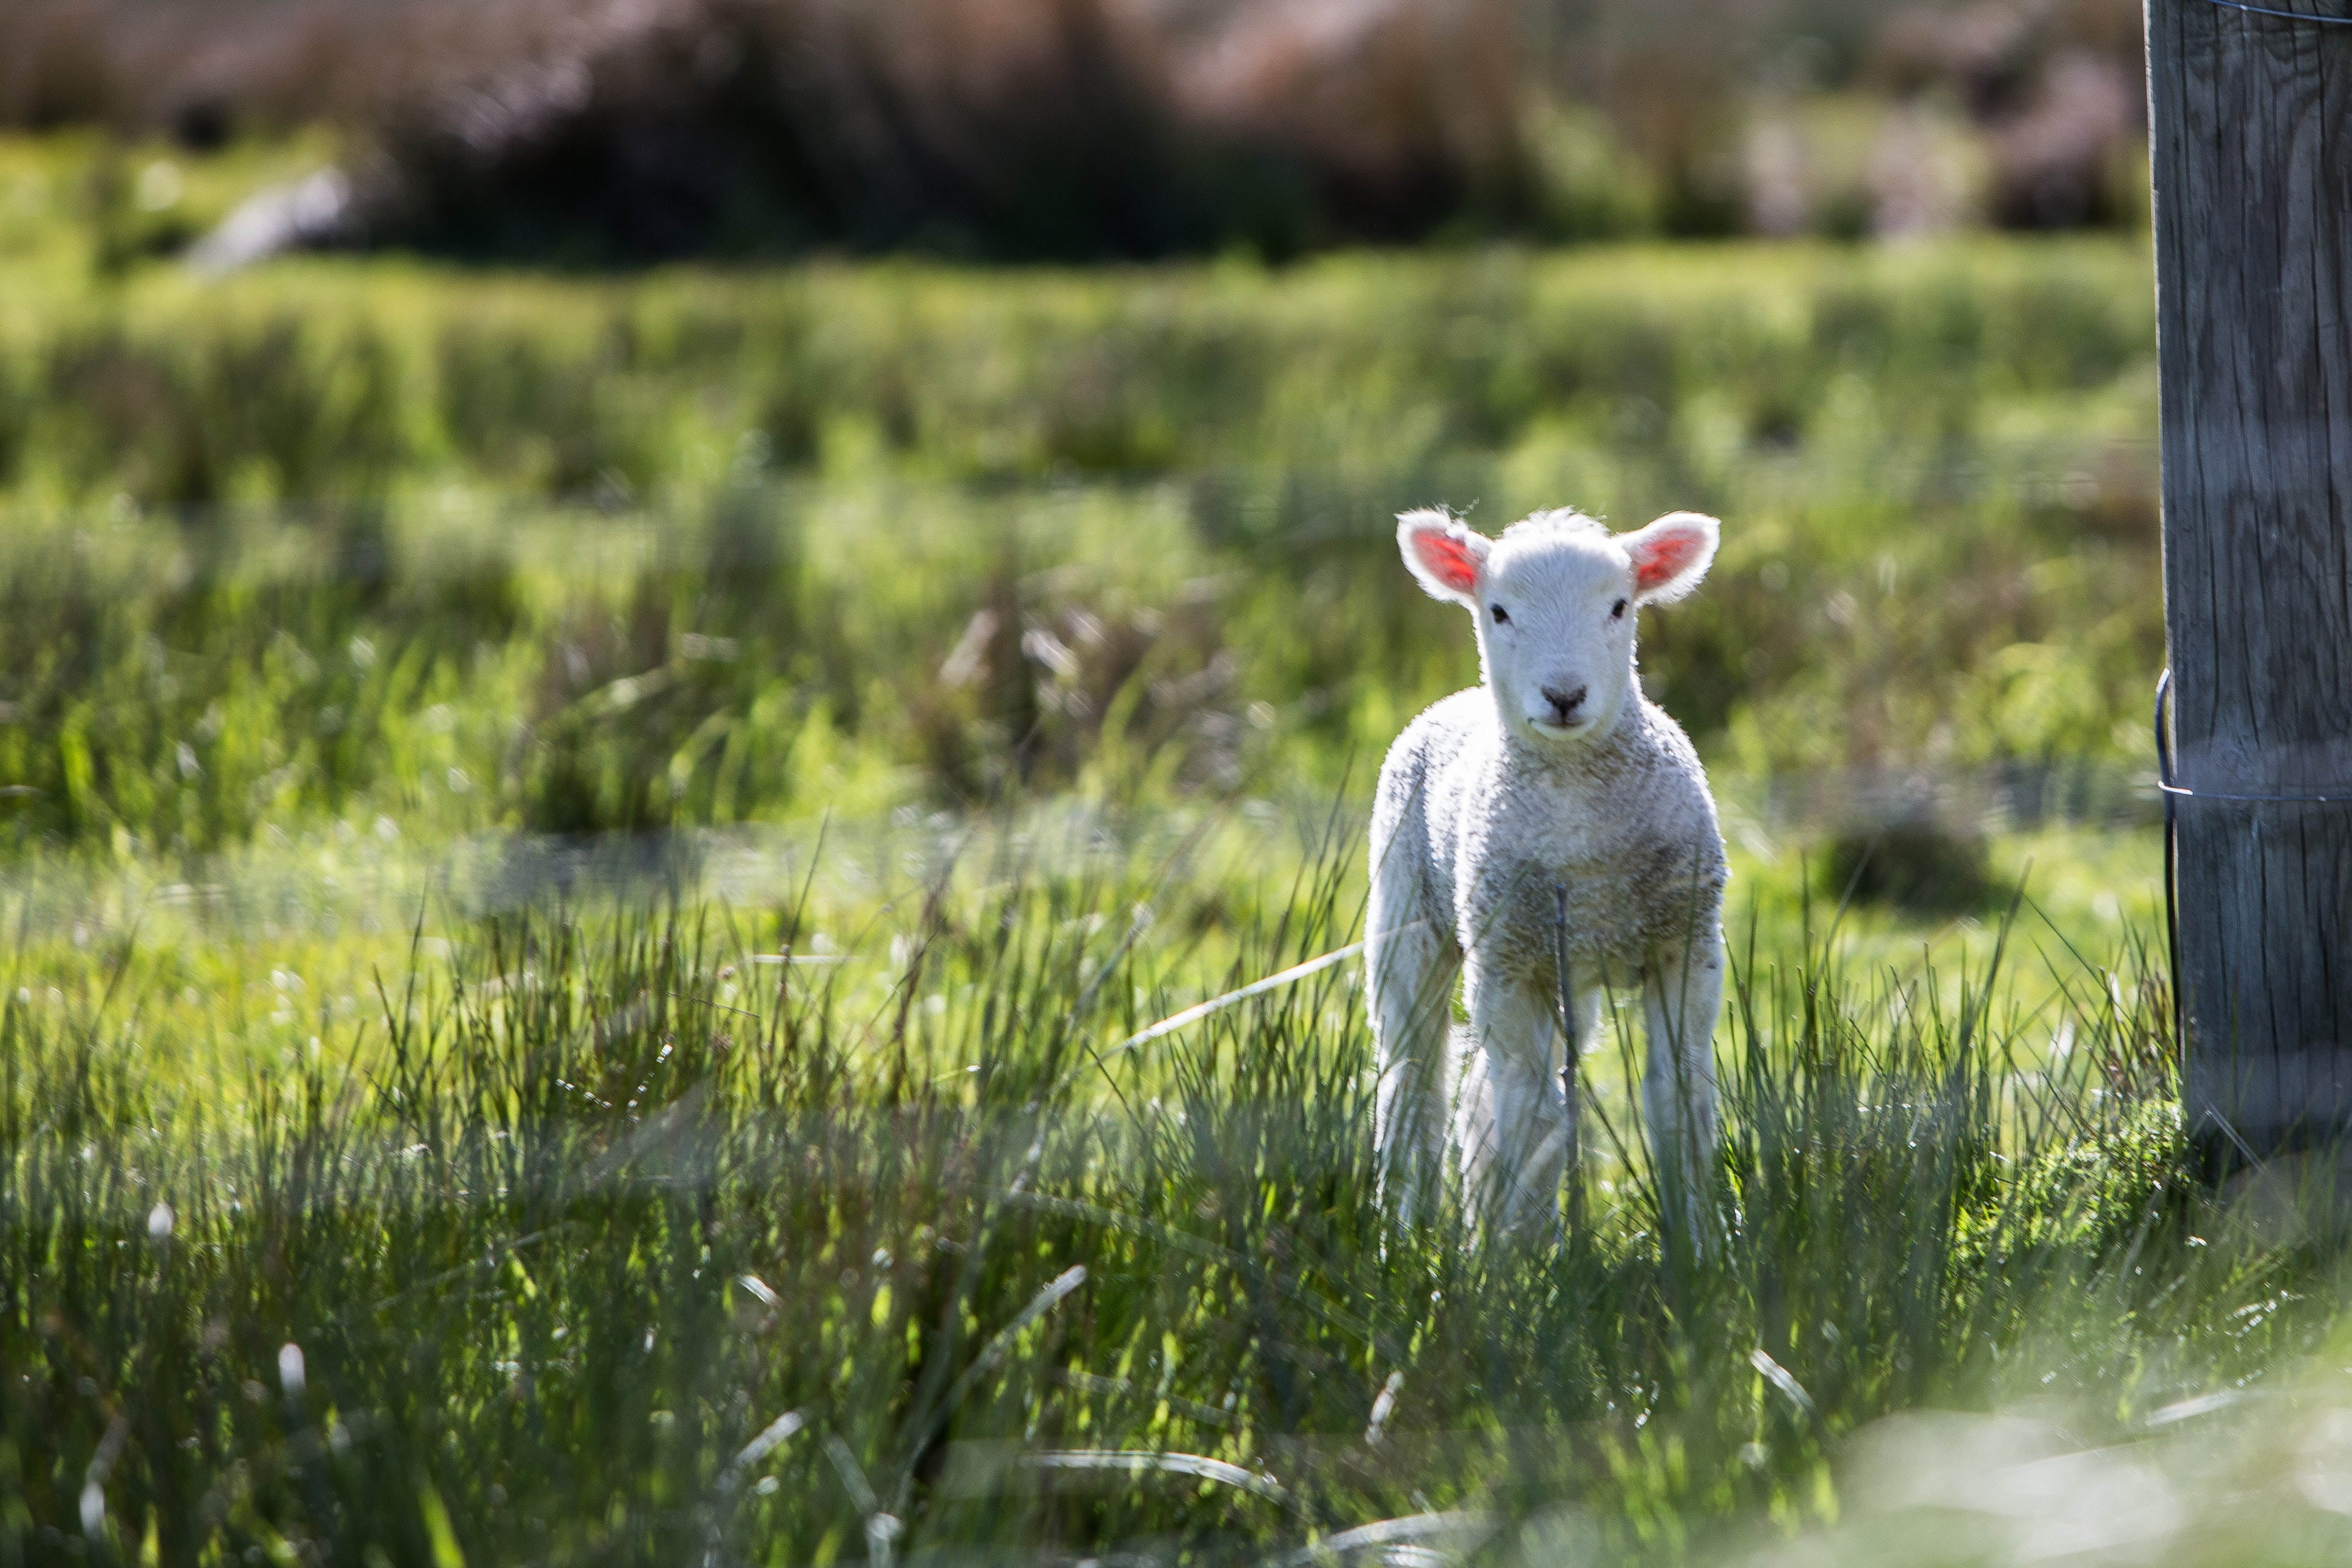 A baby lamb standing on a grassy area next to a wooden fence